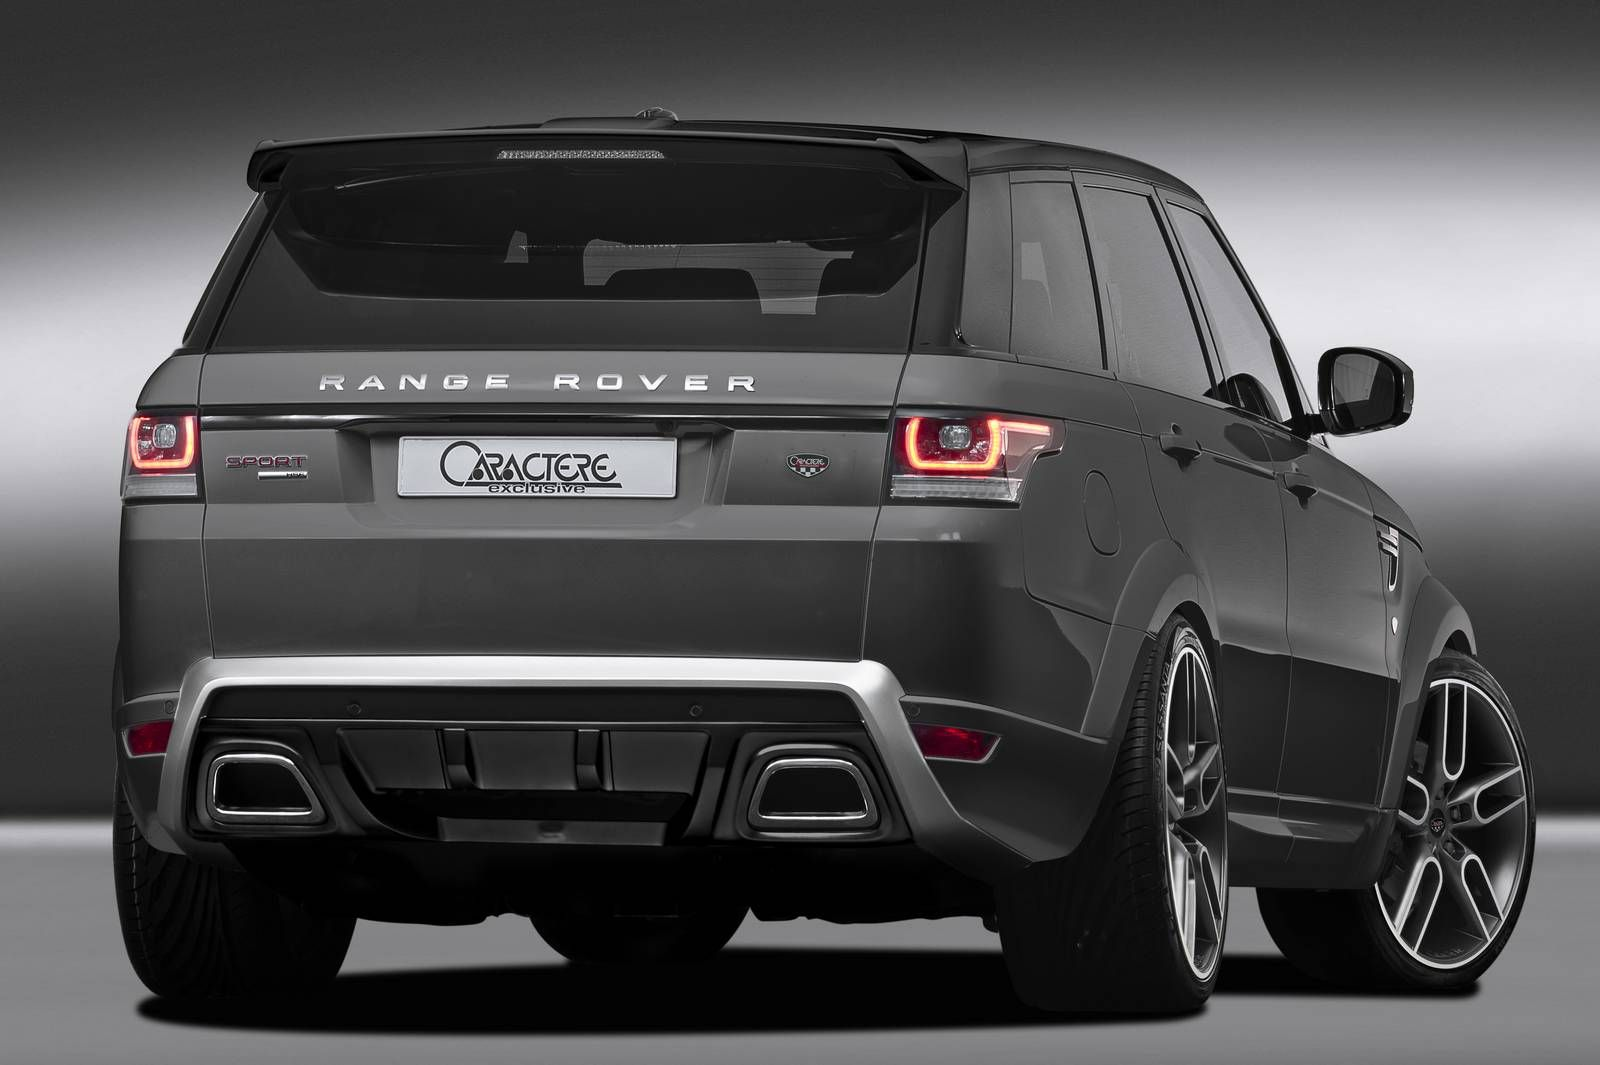 Official Caractere Exclusive Range Rover Gtspirit In 2020 Range Rover Dream Cars Range Rovers Land Rover